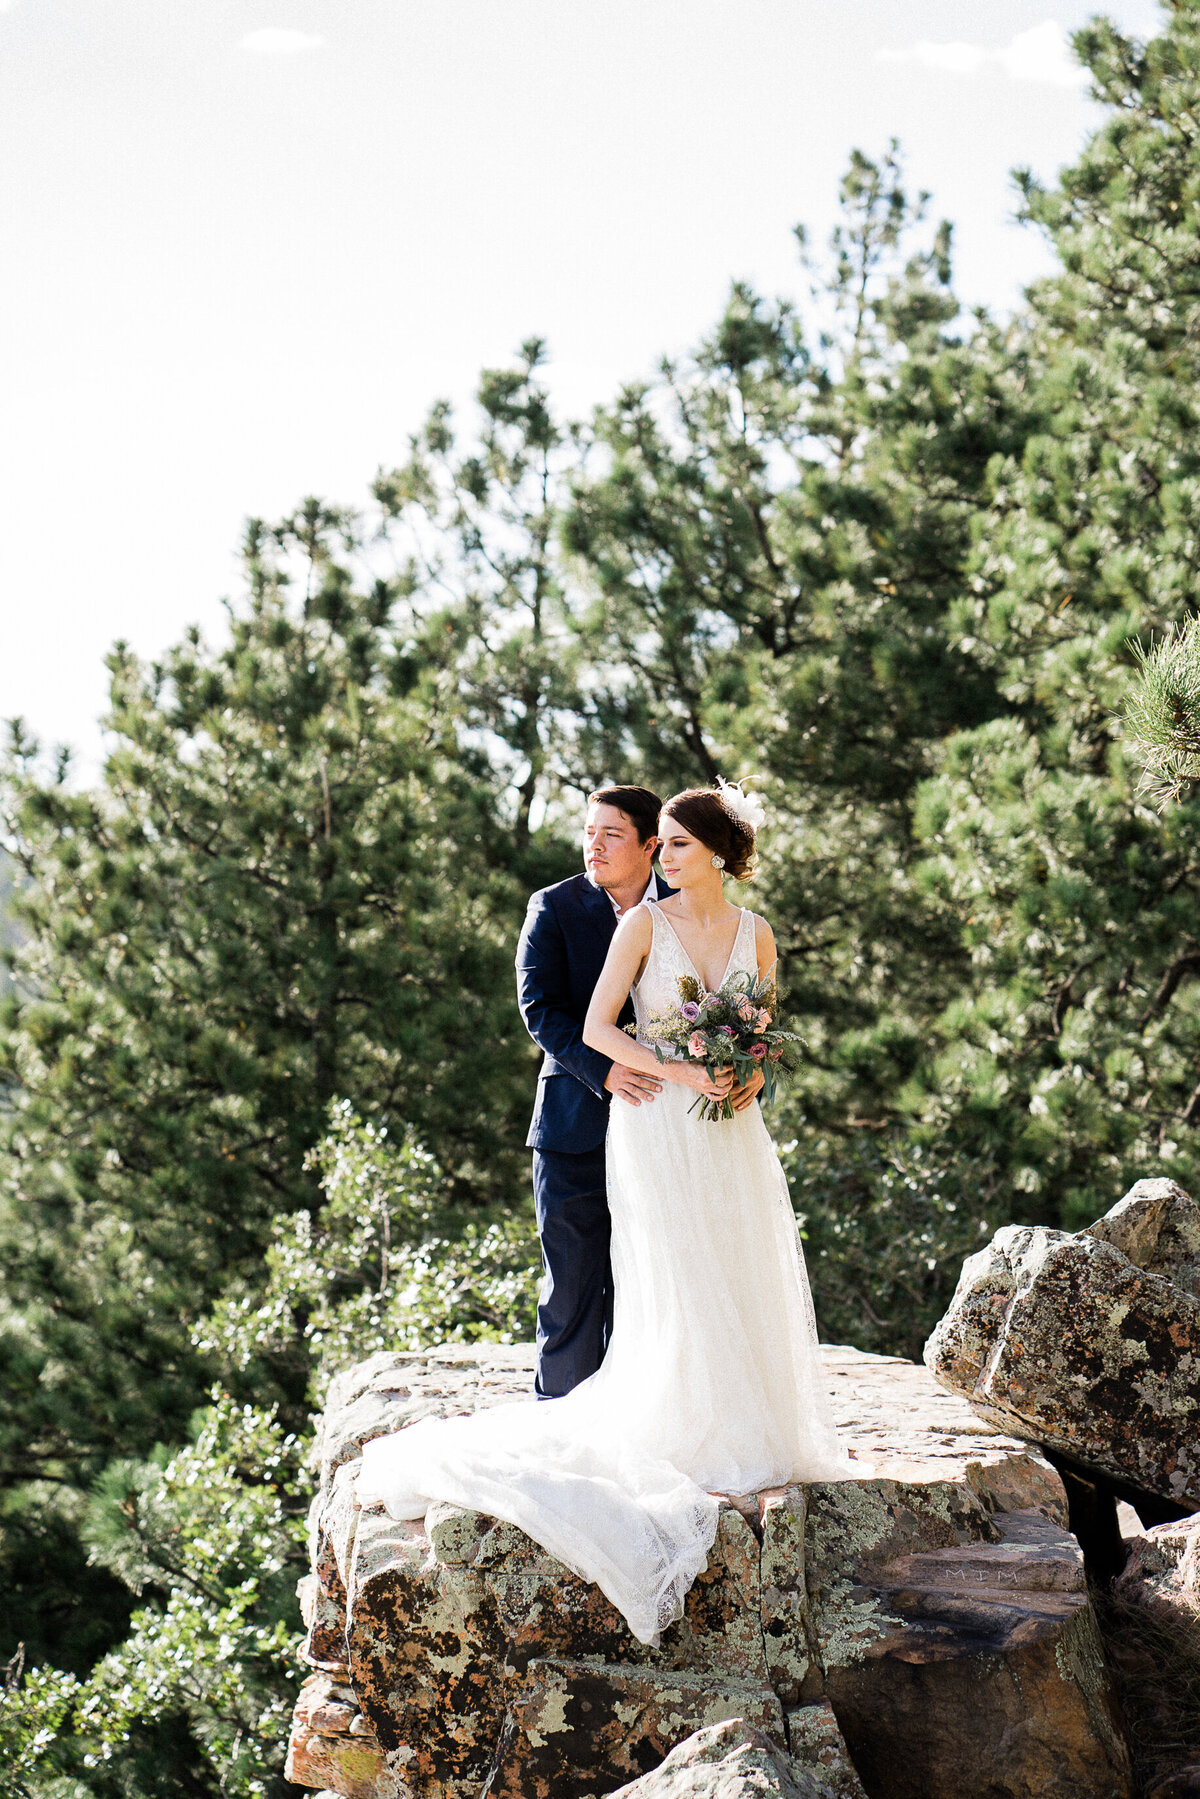 Mountain Elopement Wedding In Arizona  - Atlas Rose Photography AZ 01